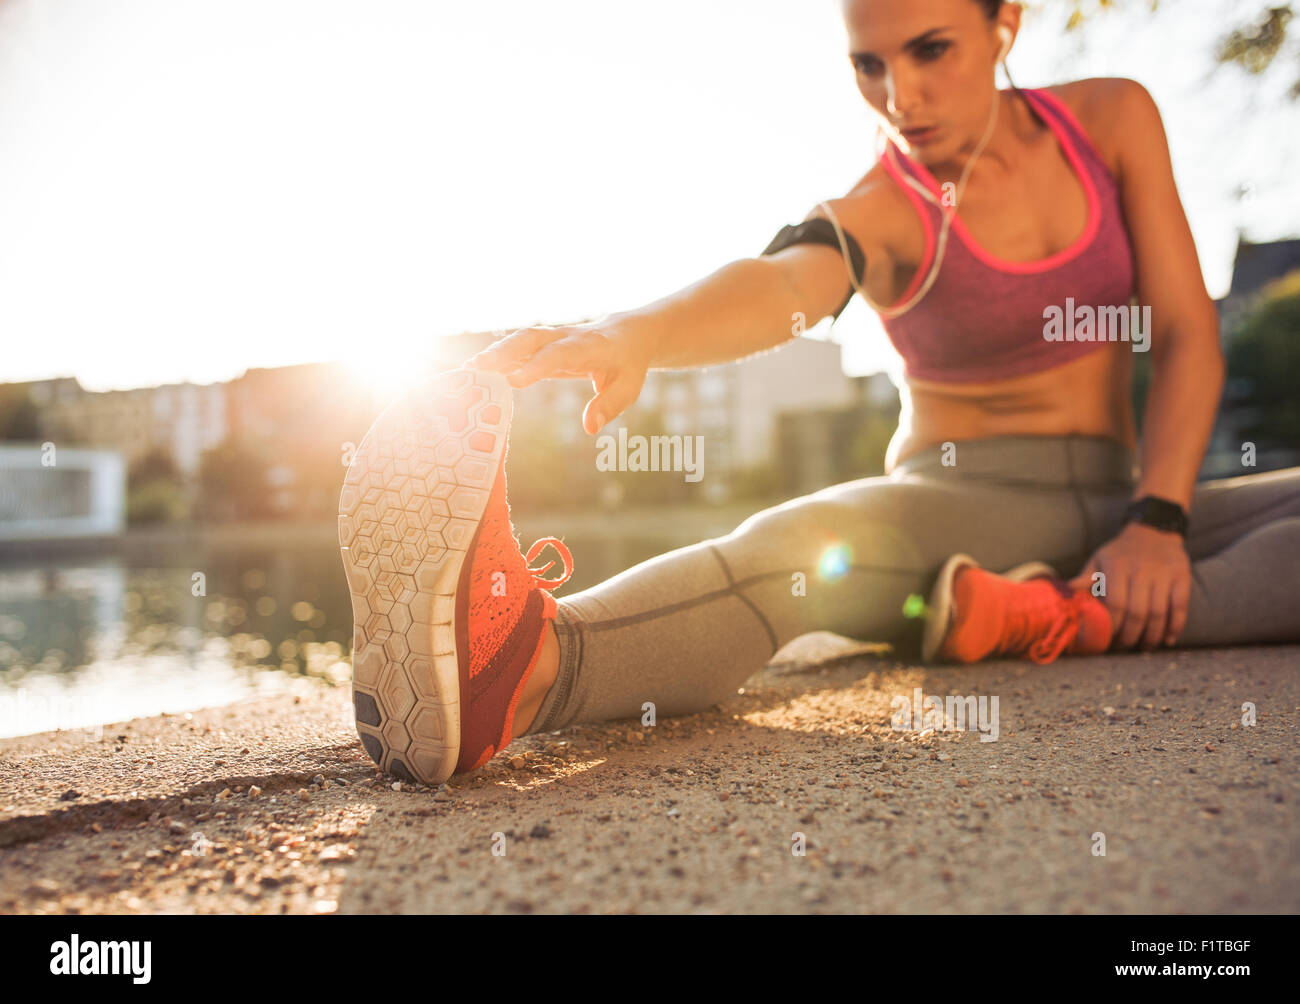 Young woman runner stretching legs before doing her summer workout. Sportswoman warming up before outdoor workout. - Stock Image